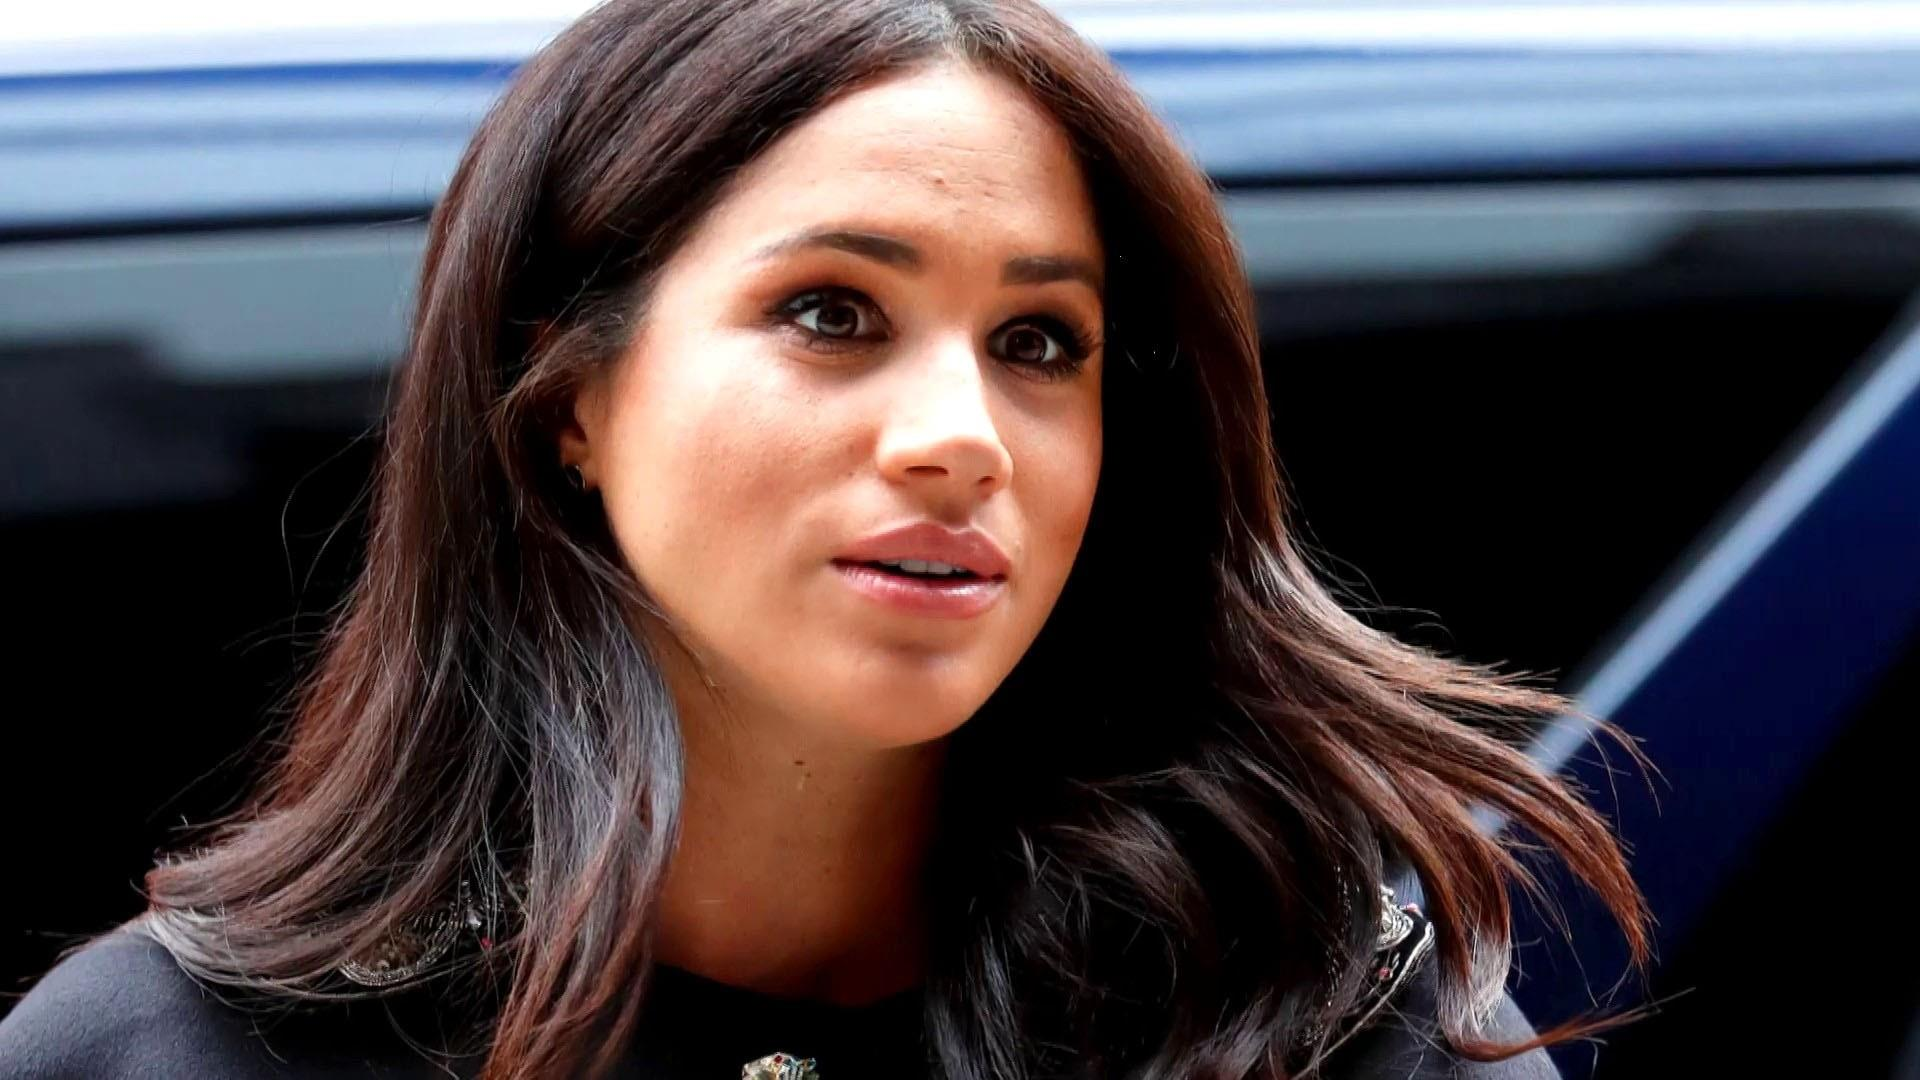 """meghan-markle-buckingham-palace-announces-they-will-start-an-investigation-after-staffers-claim-they-were-bullied-by-her"""